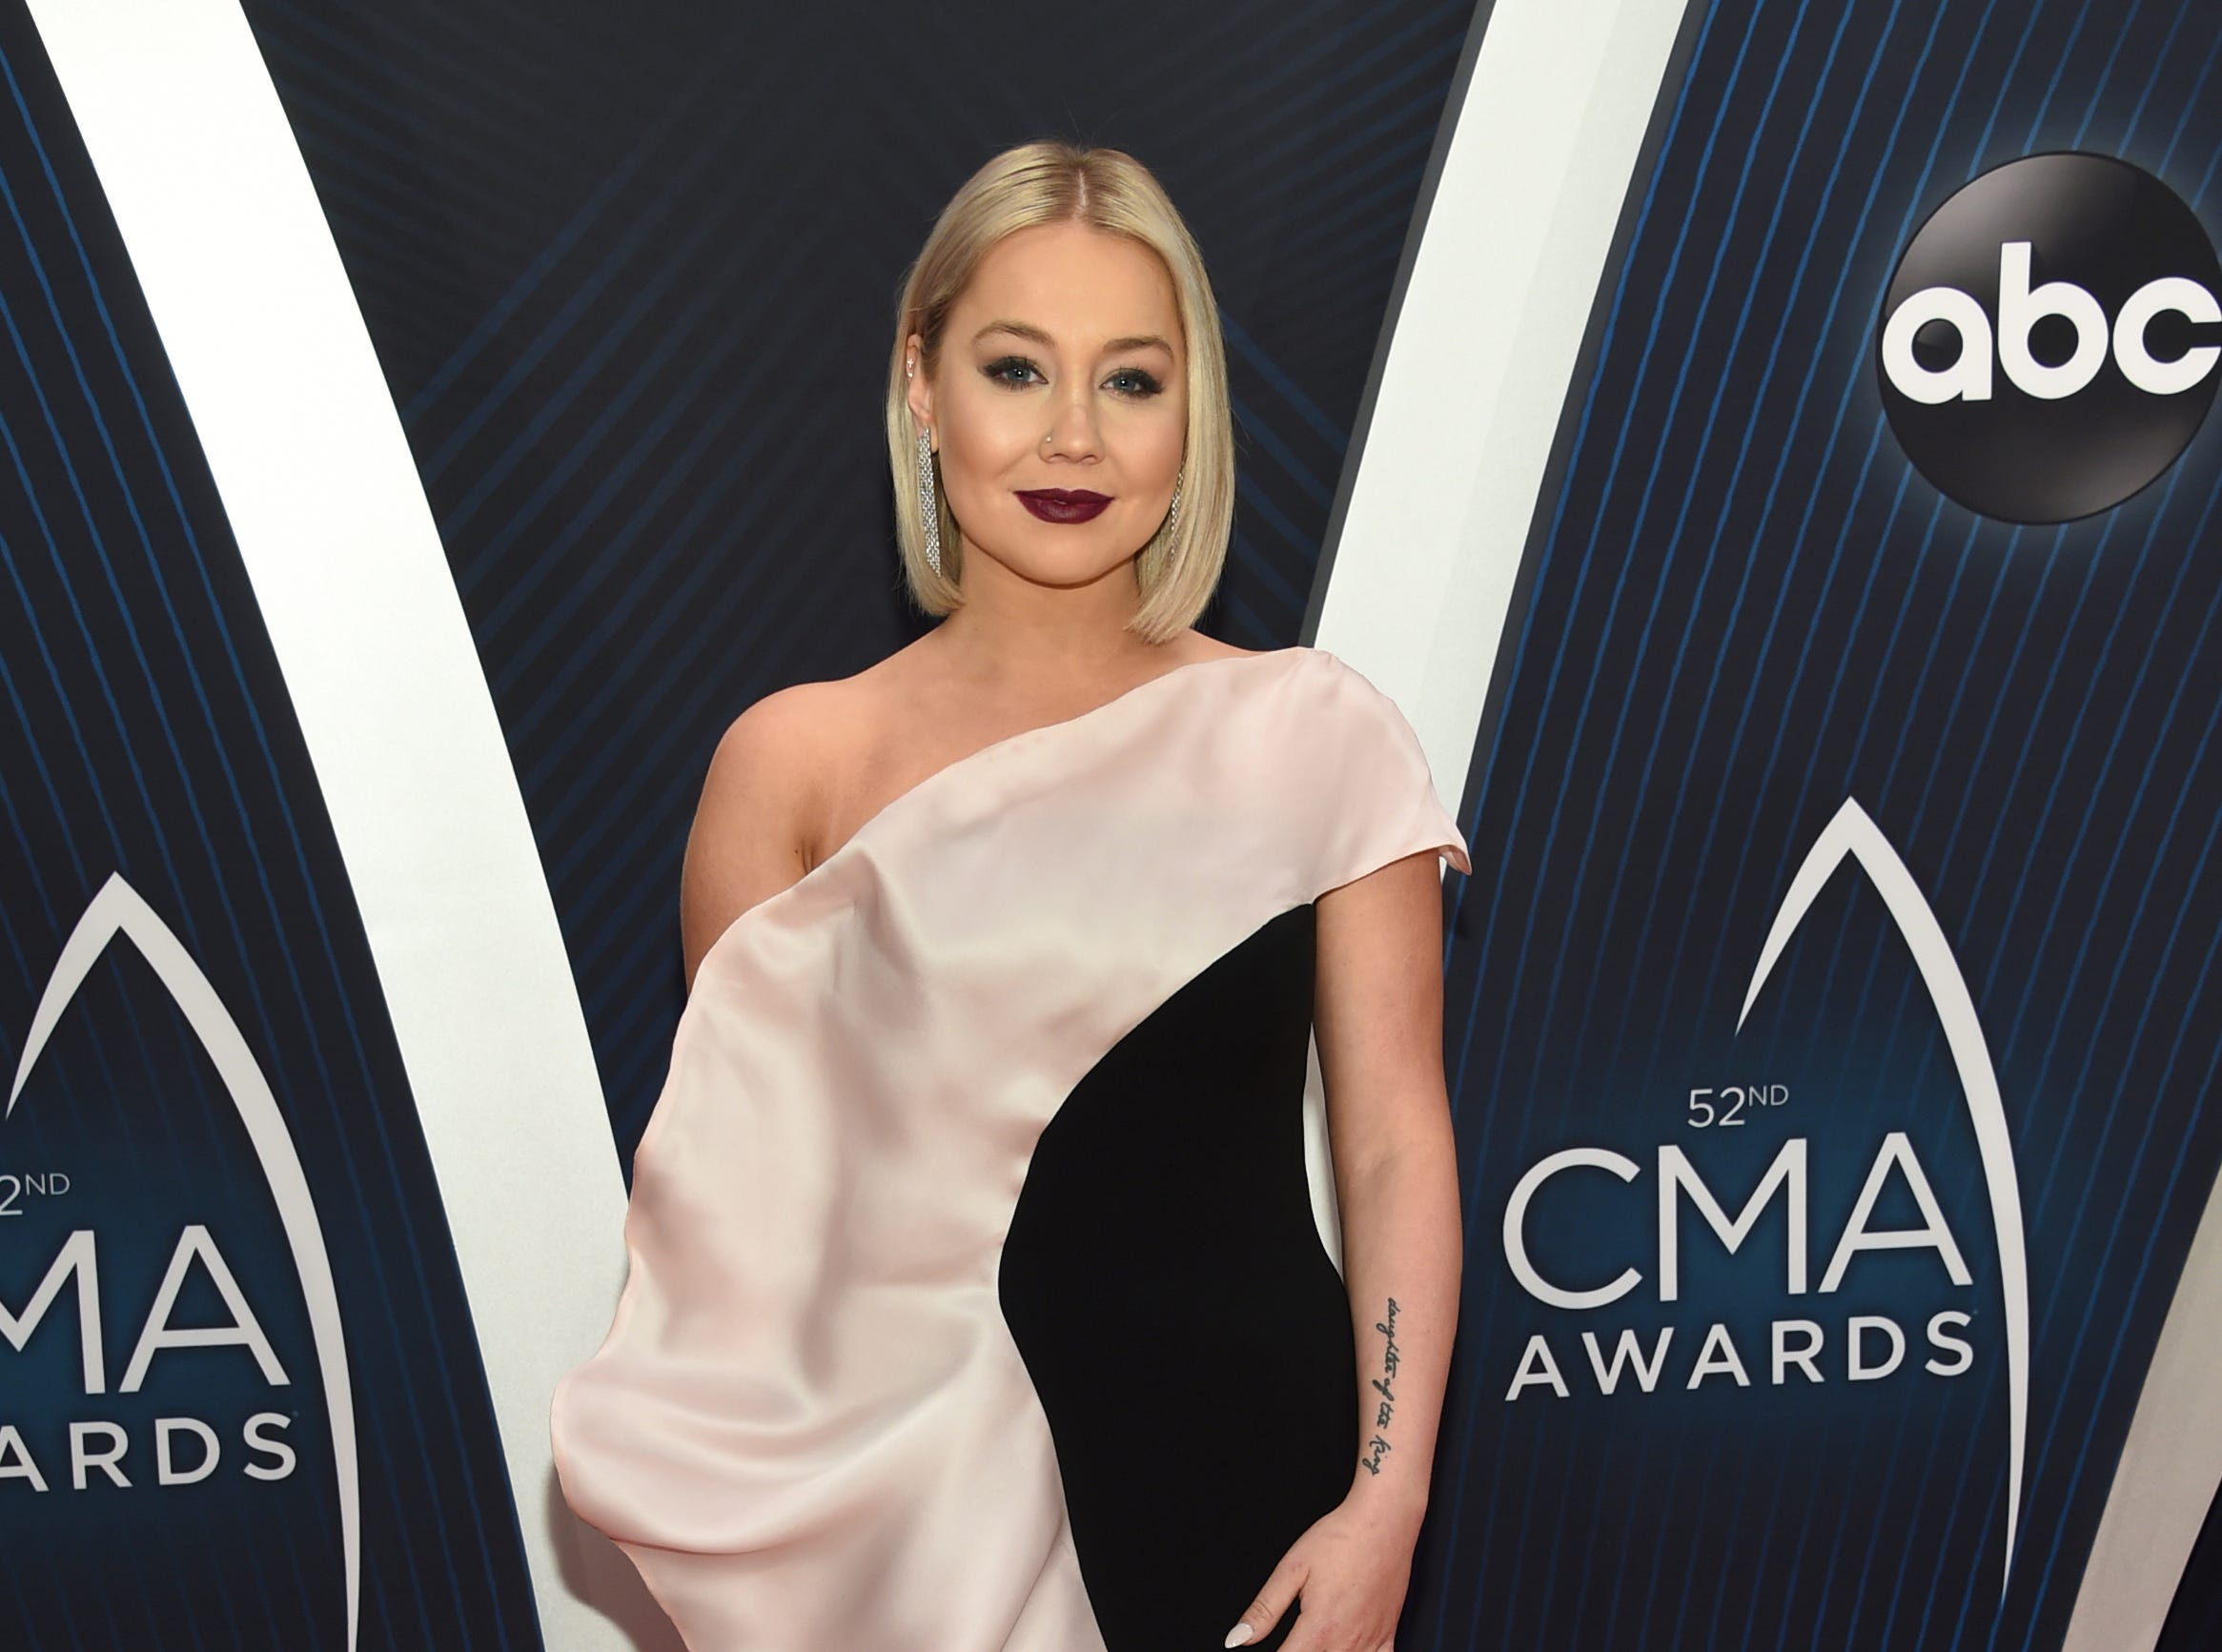 CMAs worst dressed list: RaeLynn, Jimmie Allen and more